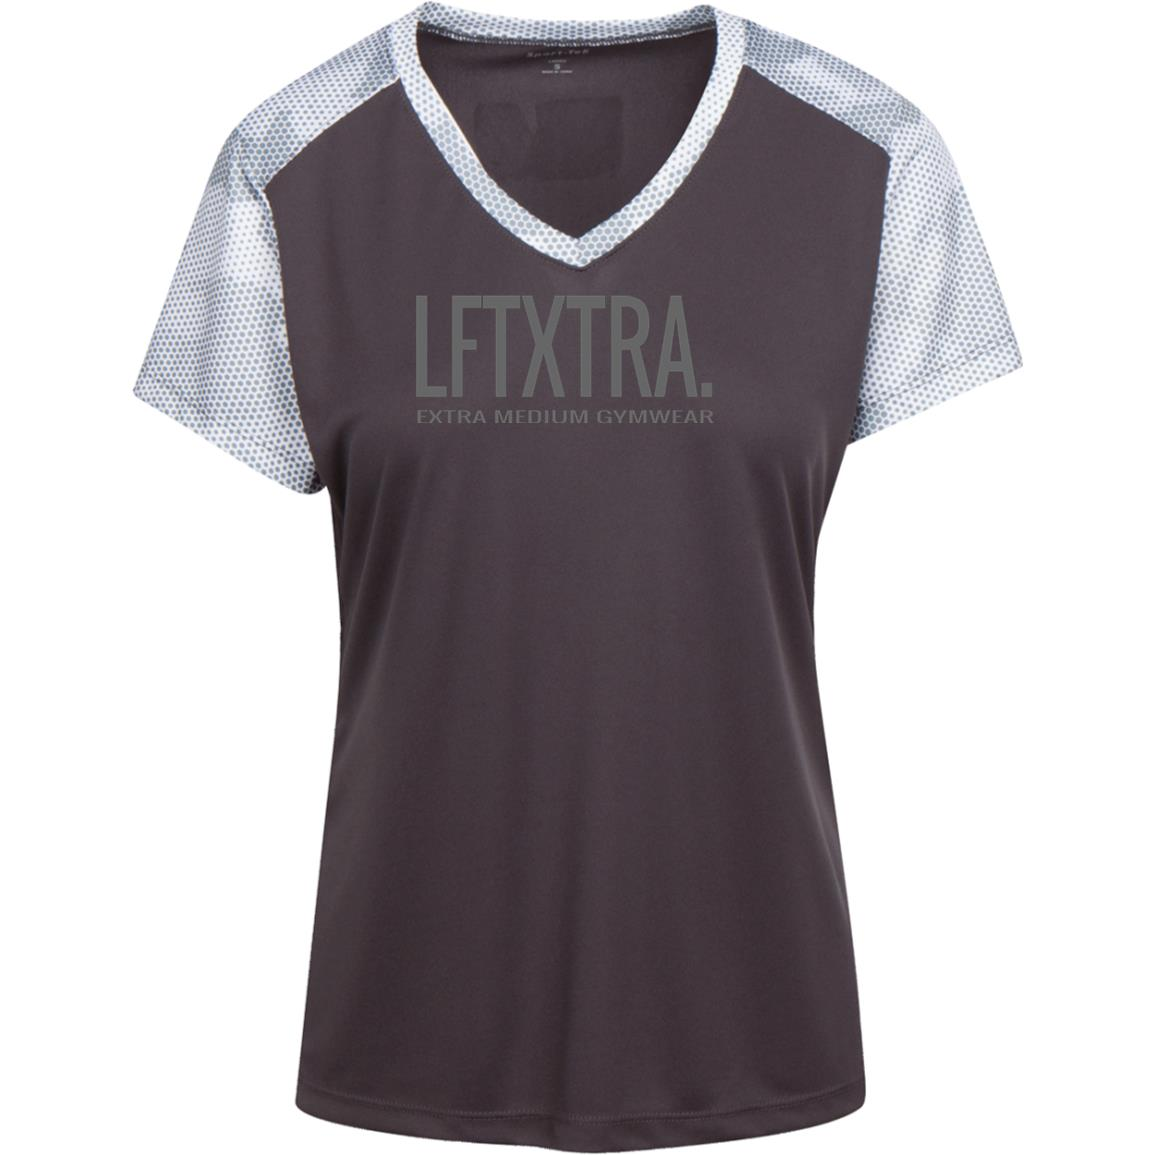 XM Gymwear LFTXTRA Ladies' CamoHex Colorblock T-Shirt